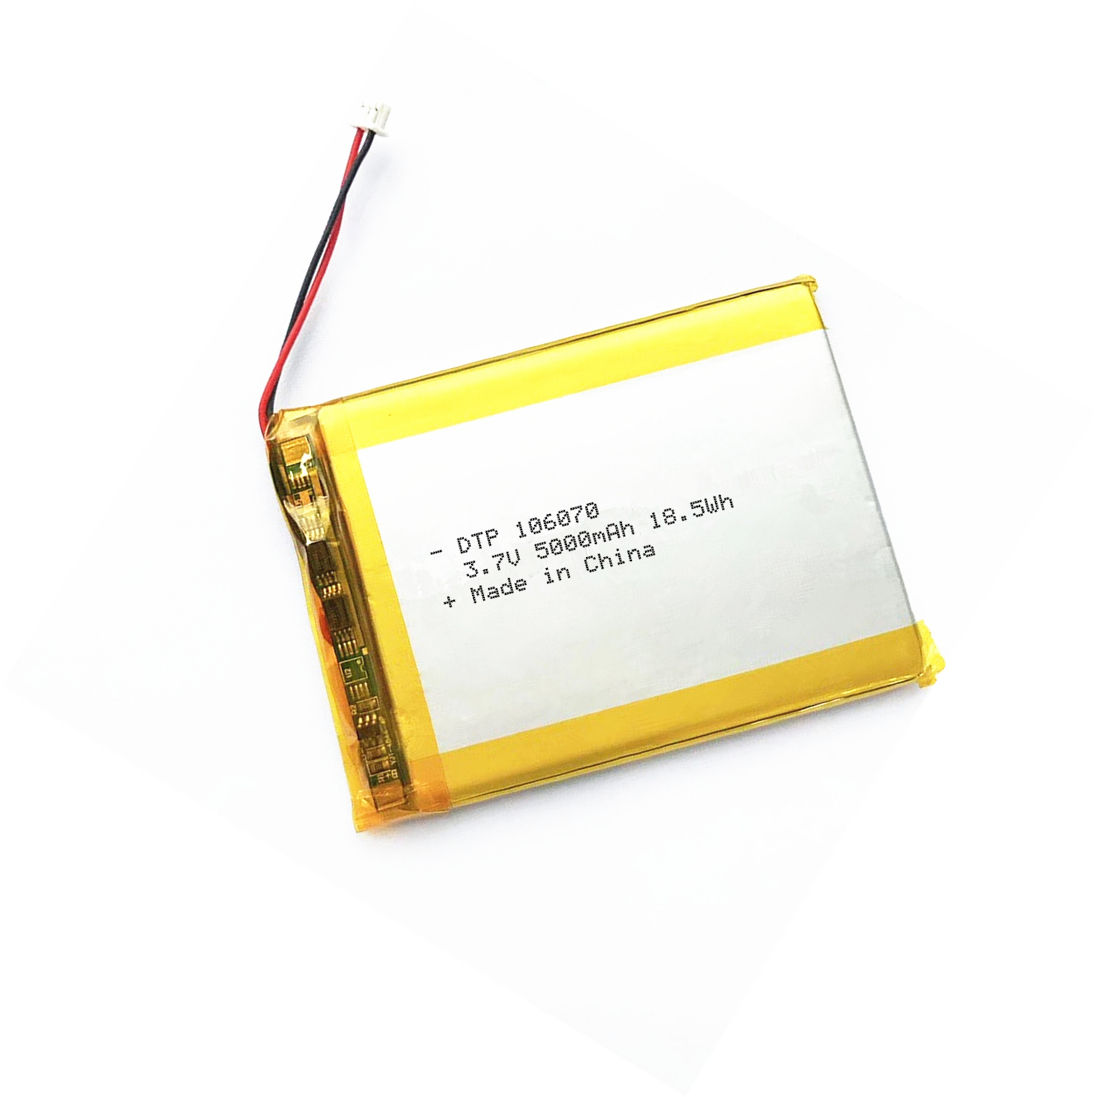 Customized rechargeable lithium 5000mah 5100mah 3.7V battery for smartphones